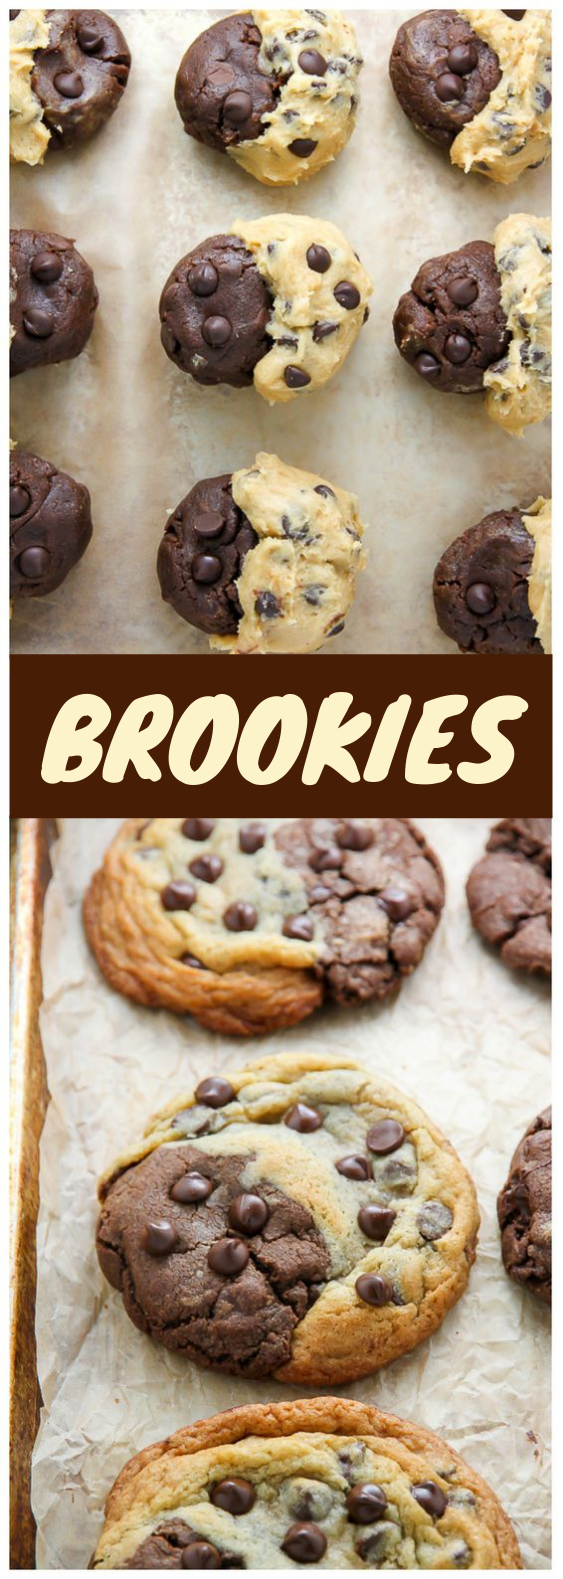 Chocolate Chip Brownie Swirl Cookies (aka Brookies) #Cookies #Brookies